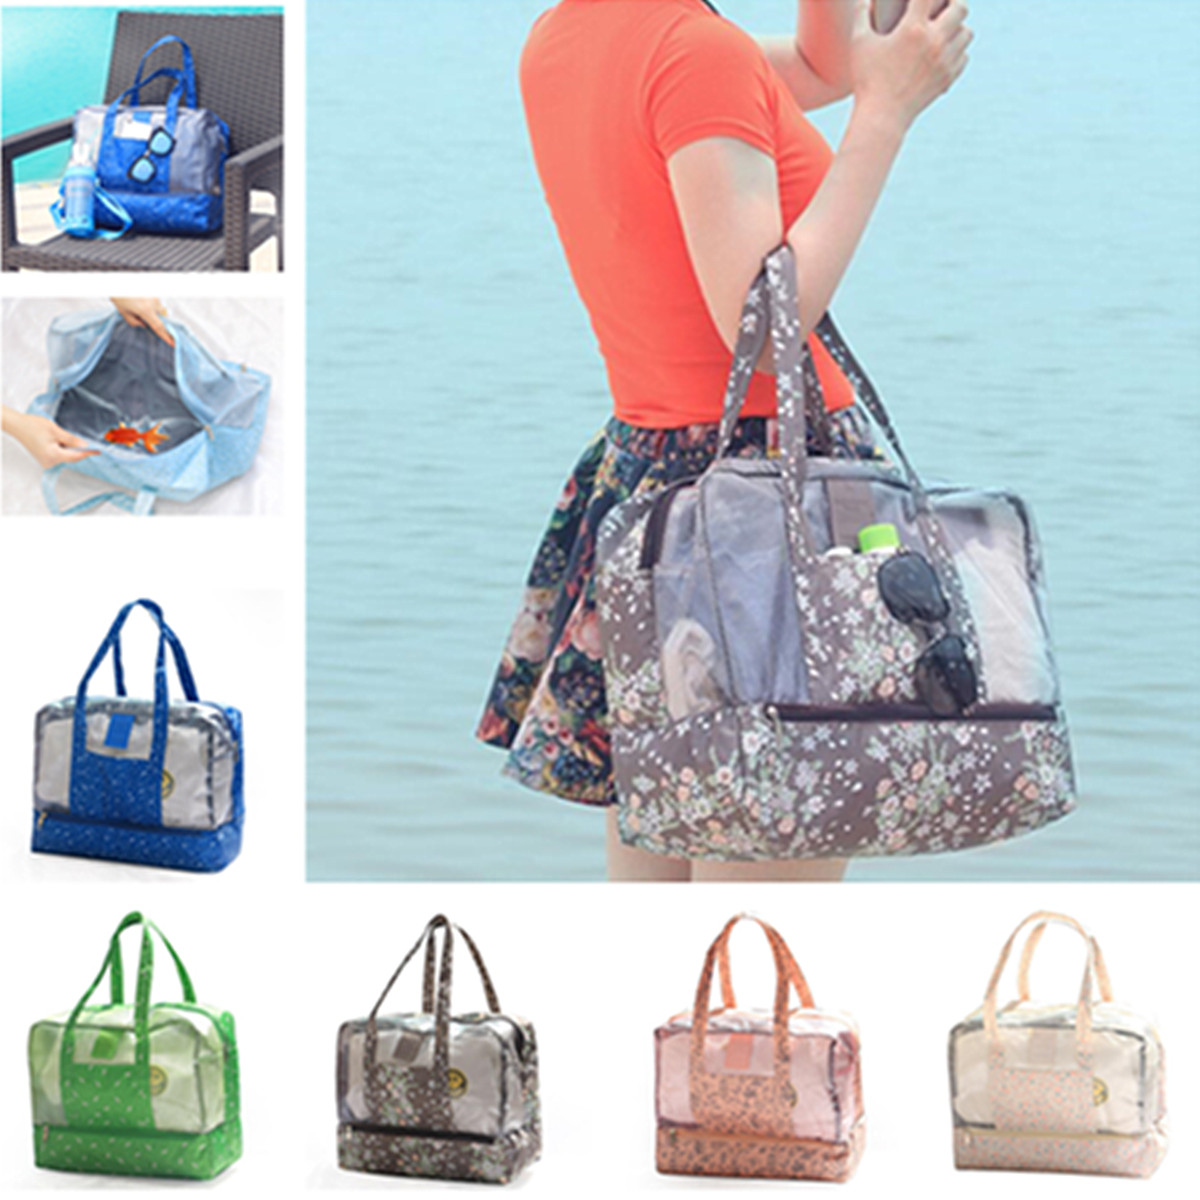 Dry Wet Separate Beach Bags Women Handbags Waterproof Swimming Travel Bag Transparent Mesh Totes Ladies Handle Bolsas Female